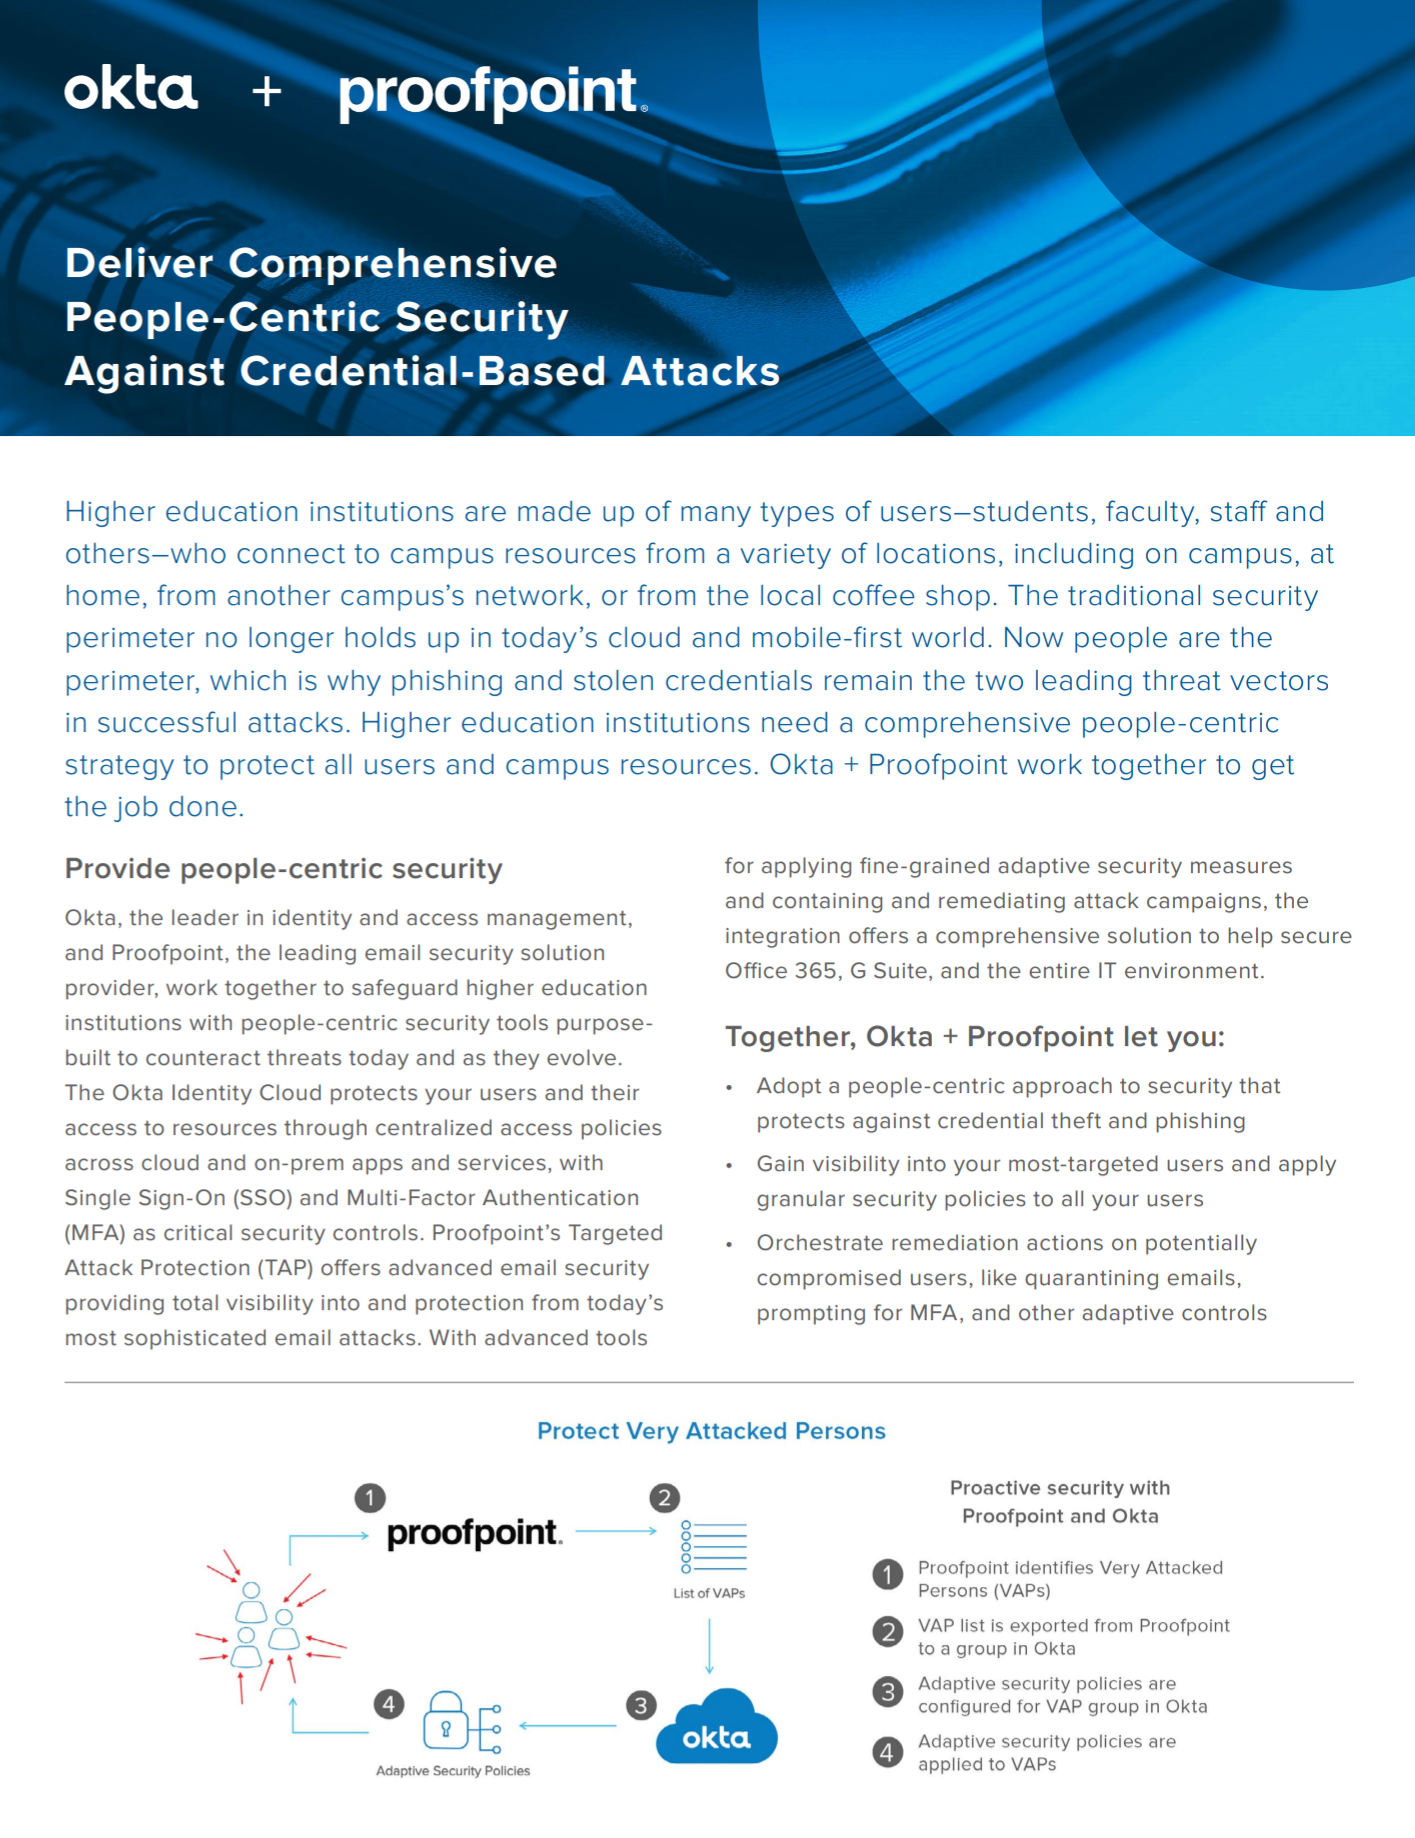 Okta and Proofpoint deliver comprehensive people-centric security against credential-based attacks.